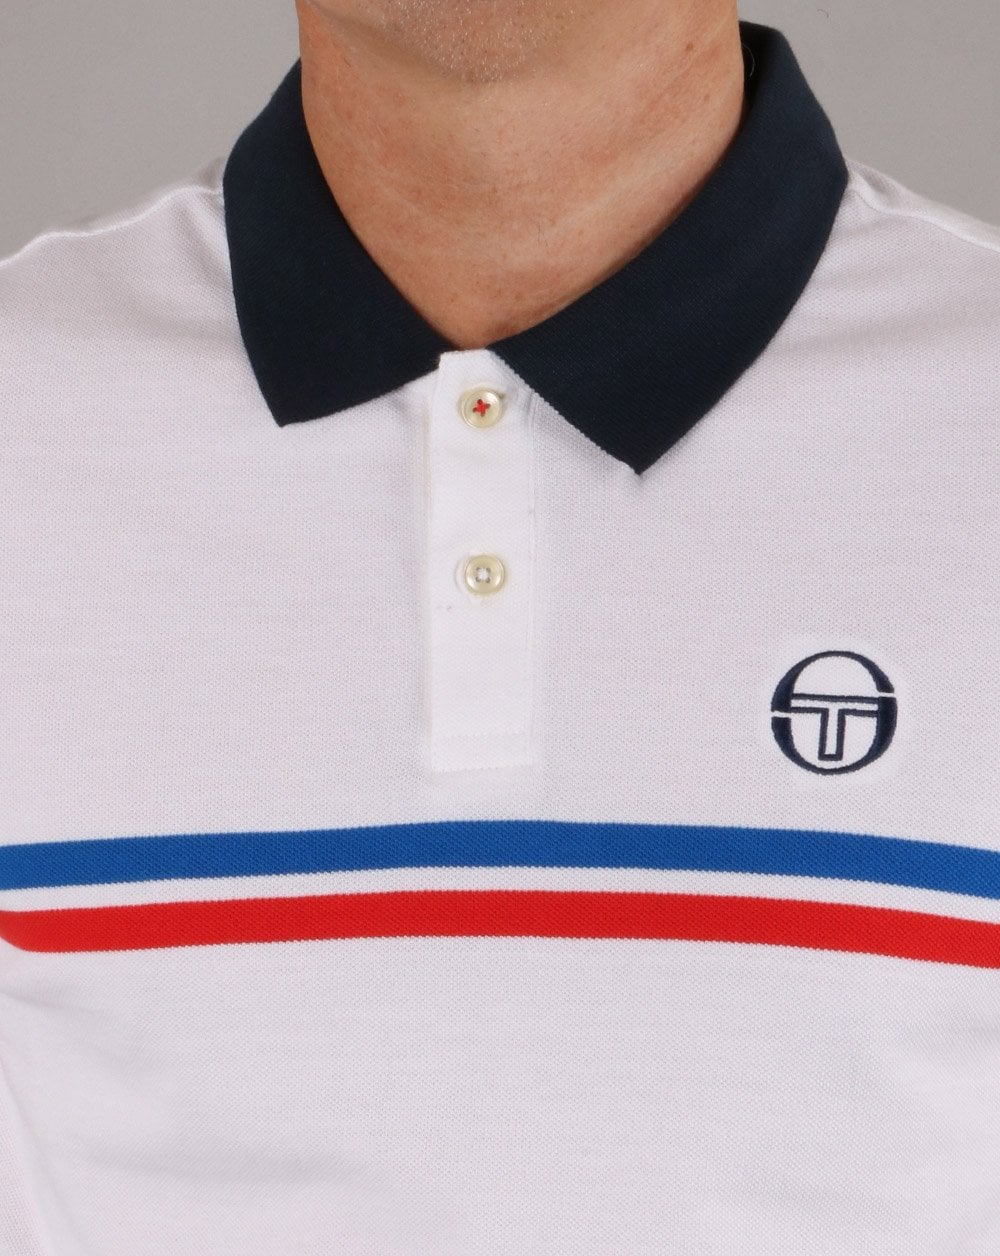 a24a9ad0 Sergio Tacchini Supermac Polo Shirt White/Royal/Red | 80s casual